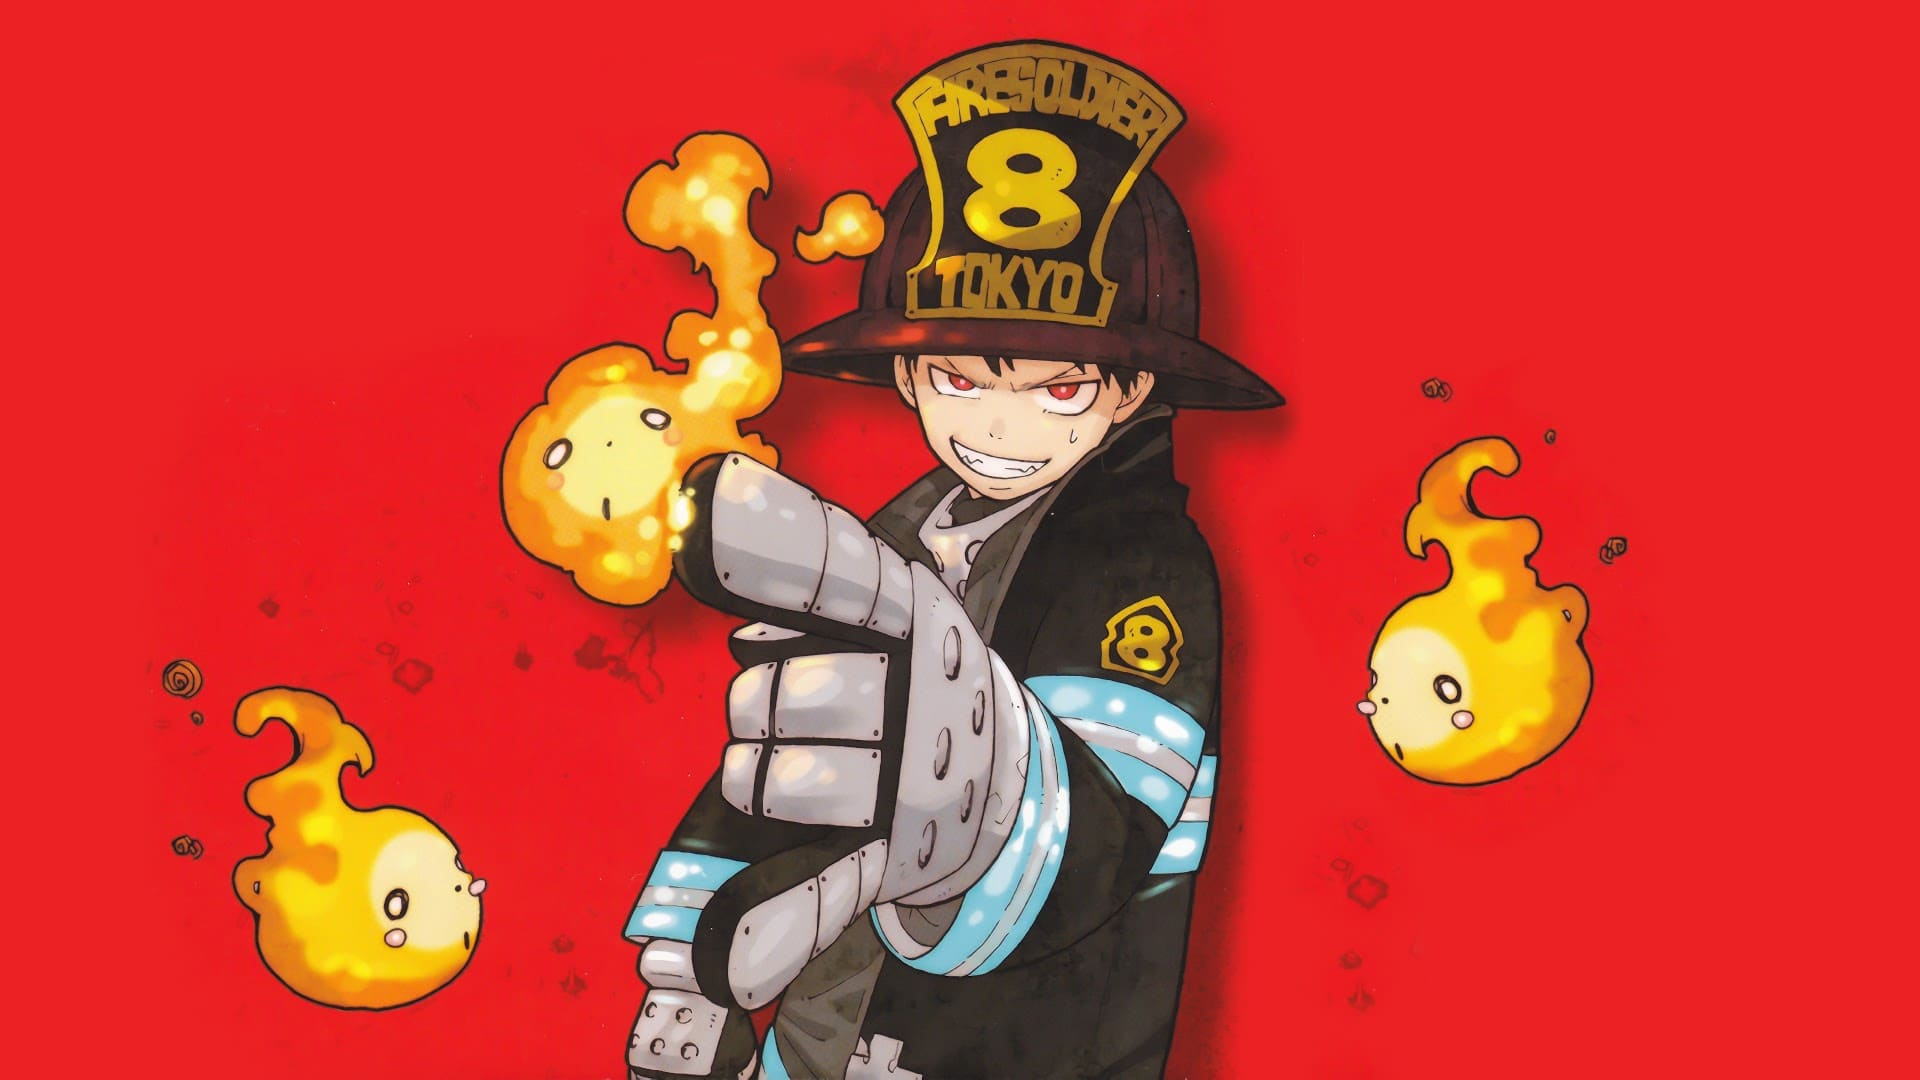 Fire Force Wallpapers Top 4k Background Download Meet our new fire force wallpapers for new tab extension for all the fire force anime lovers! fire force wallpapers top 4k